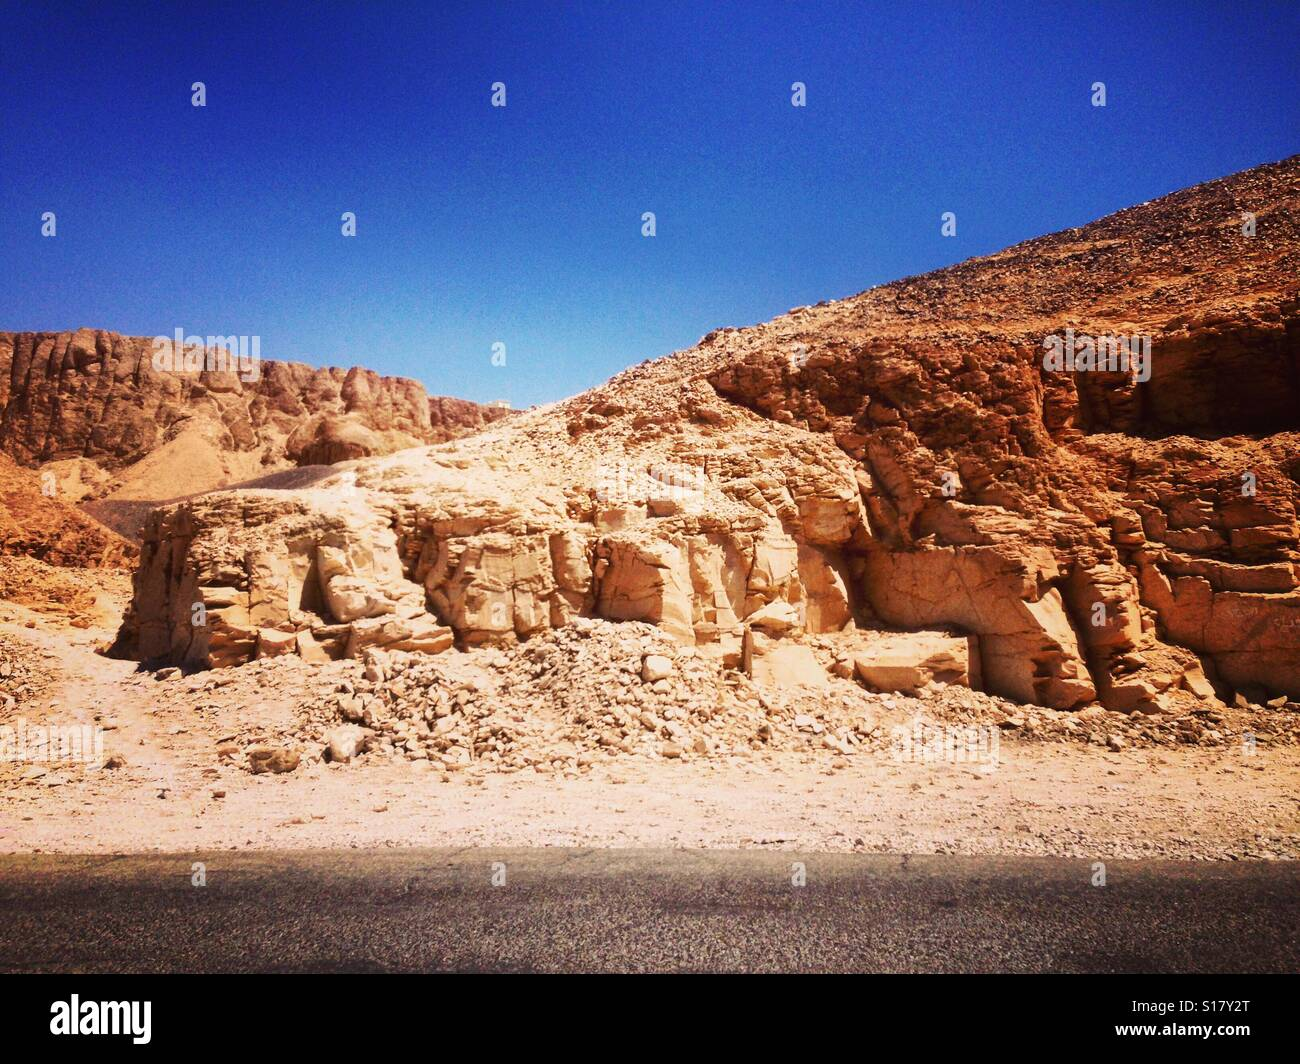 Valley of the Kings road - Stock Image